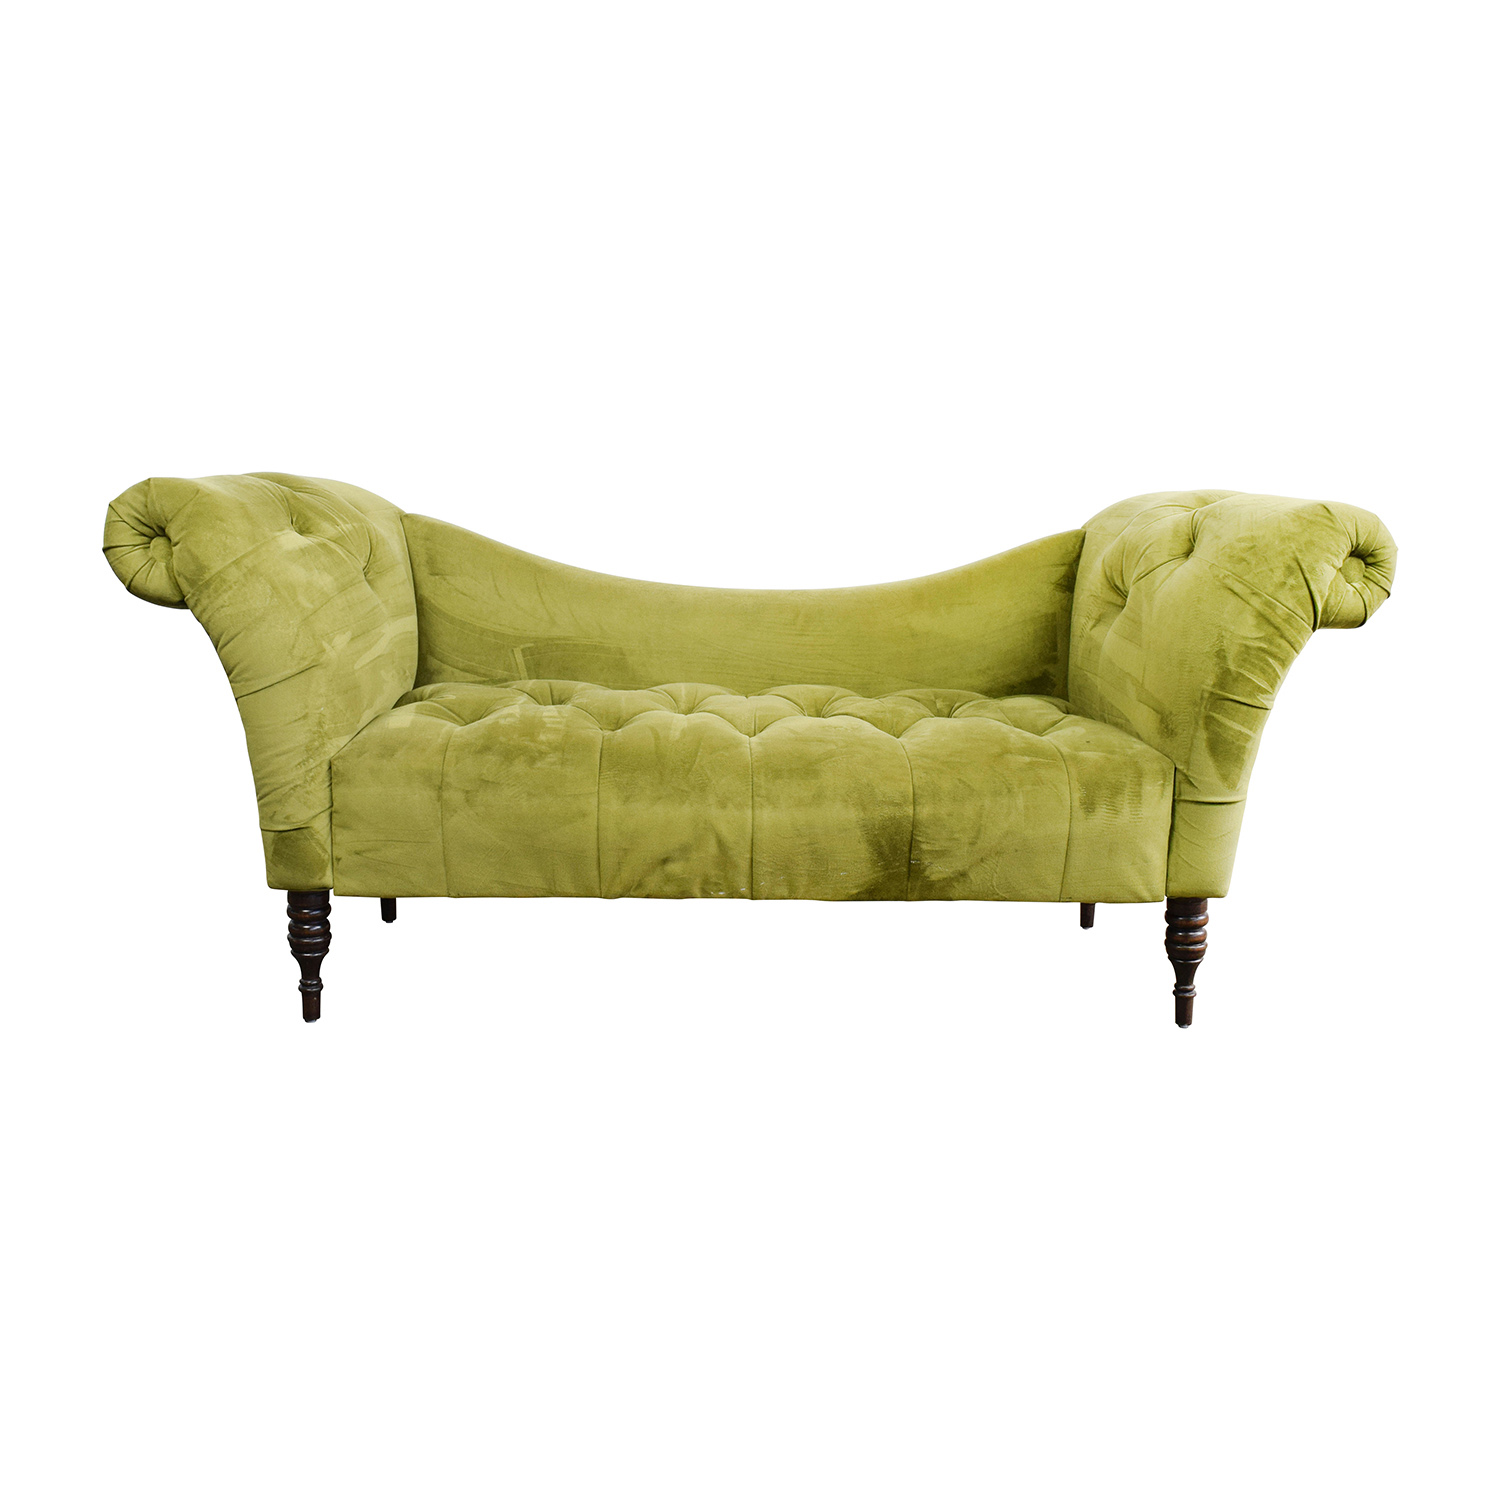 Awesome 43 Off Urban Outfitters Urban Outfitters Antoinette Tufted Fainting Sofa Sofas Unemploymentrelief Wooden Chair Designs For Living Room Unemploymentrelieforg